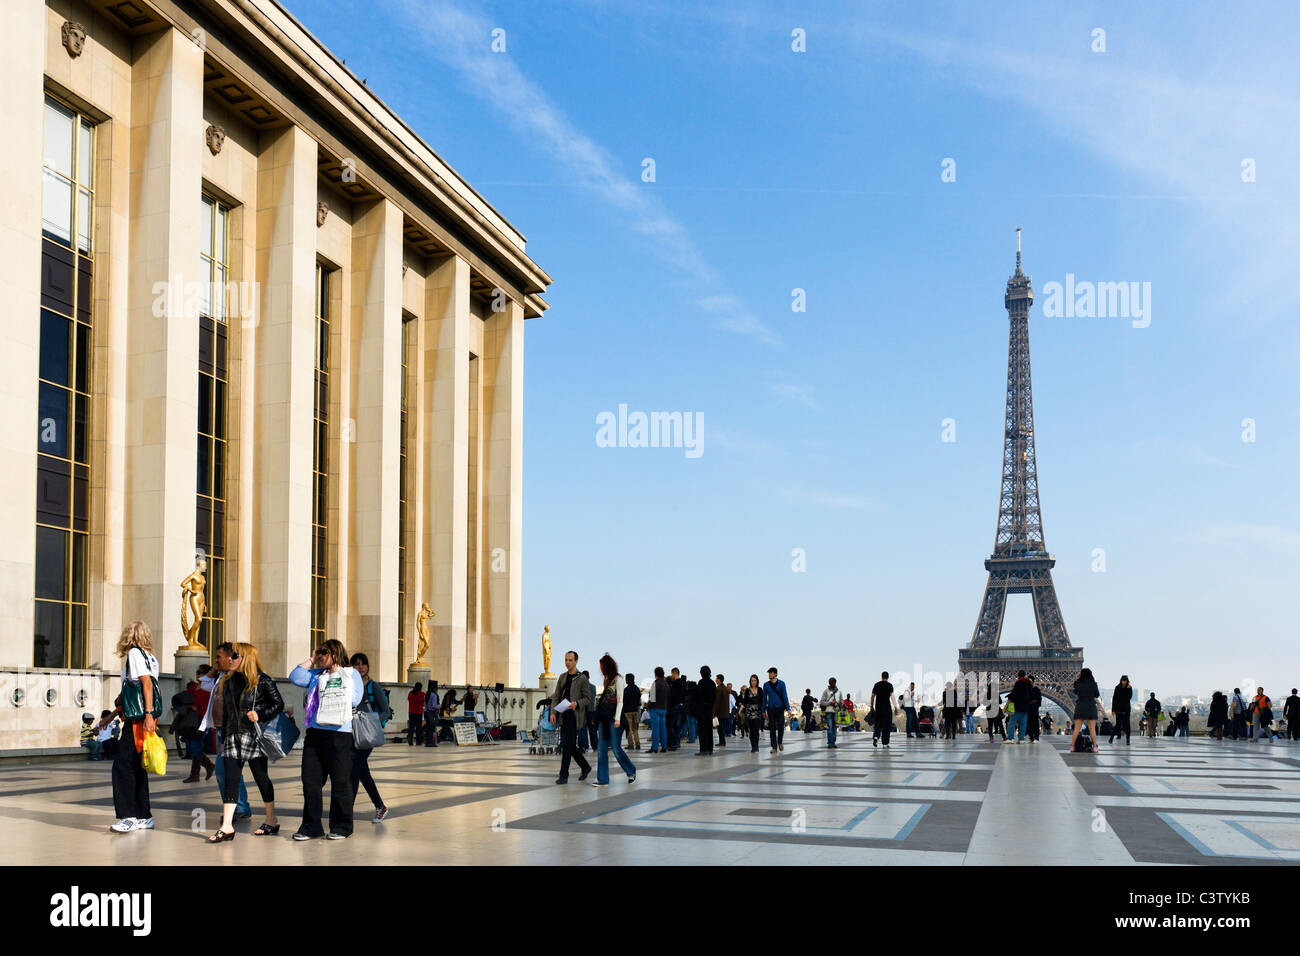 The Palais de Chaillot and the Eiffel Tower viewed from the Trocadero in the late afternoon, Paris, France - Stock Image